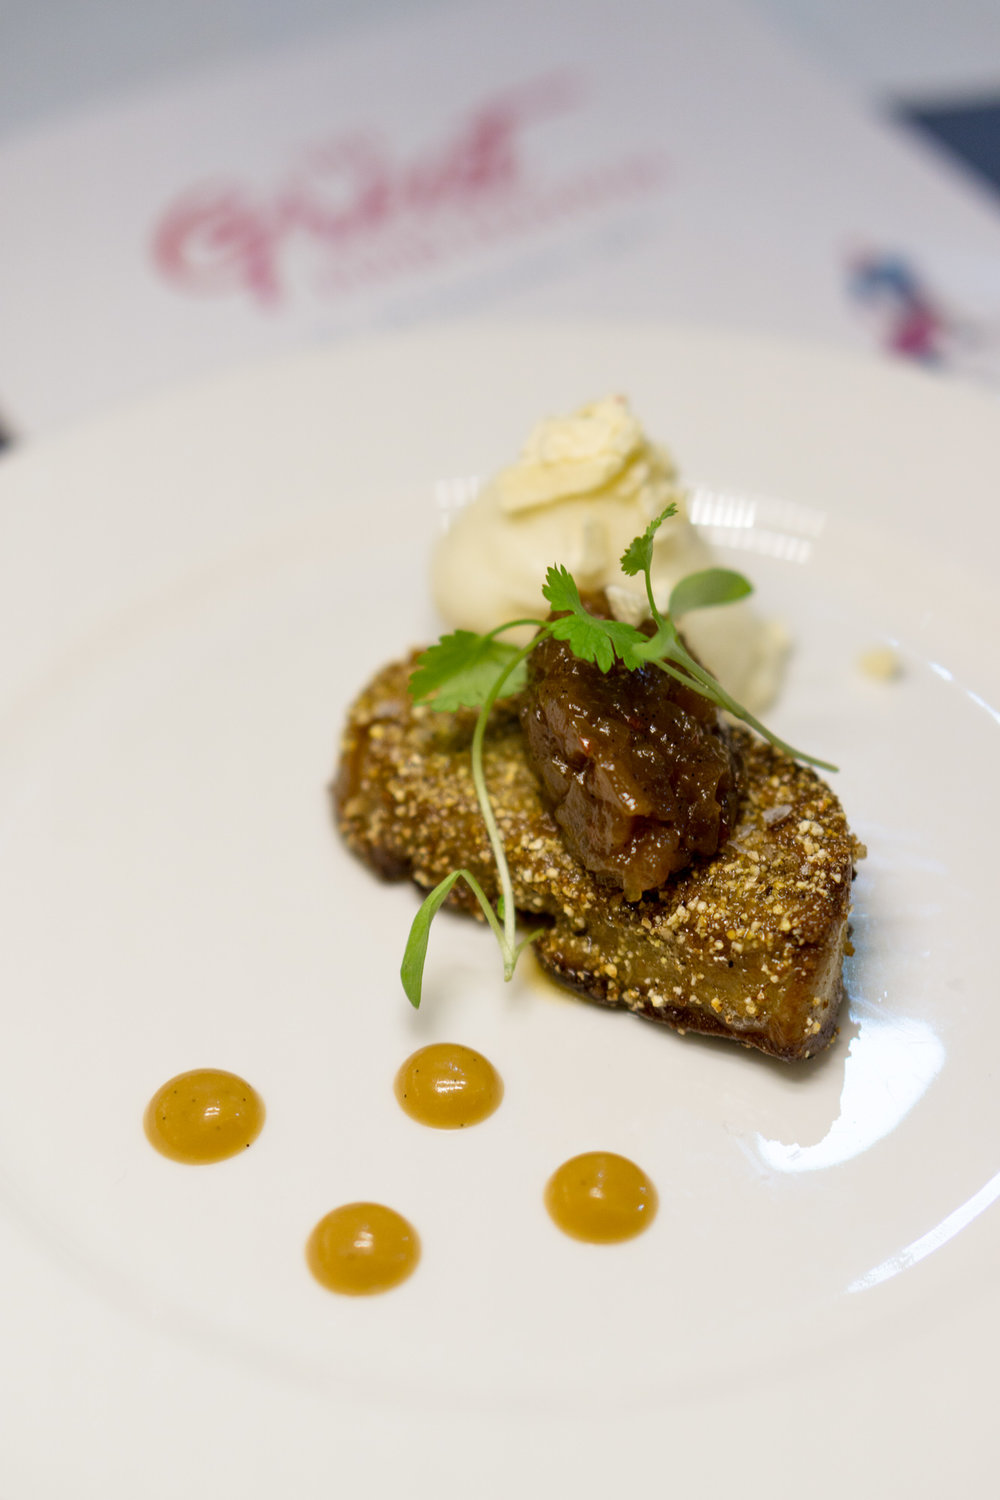 Pan-Fried-Foie-Gras-from-Osia.jpg